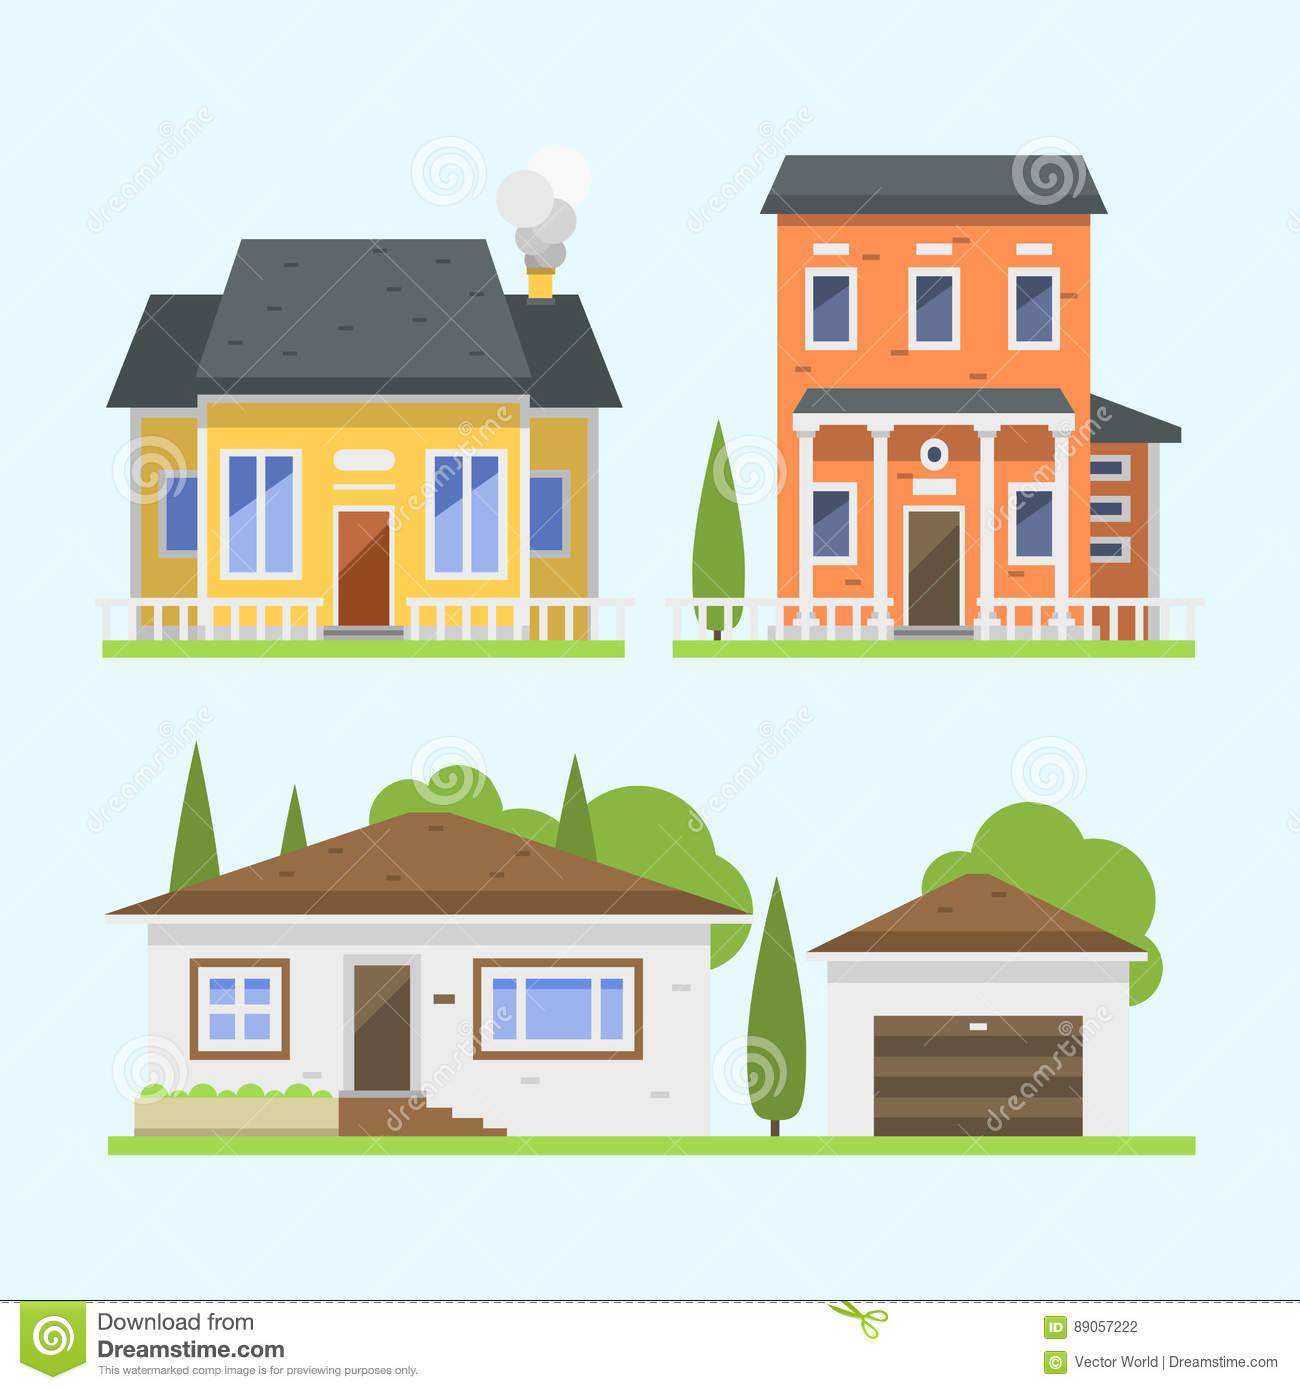 Cute Colorful Flat Style House Village Symbol Real Estate Cottage And Home Design Residential Colorful Building Stock Vector Illustration Of House Place 89057222